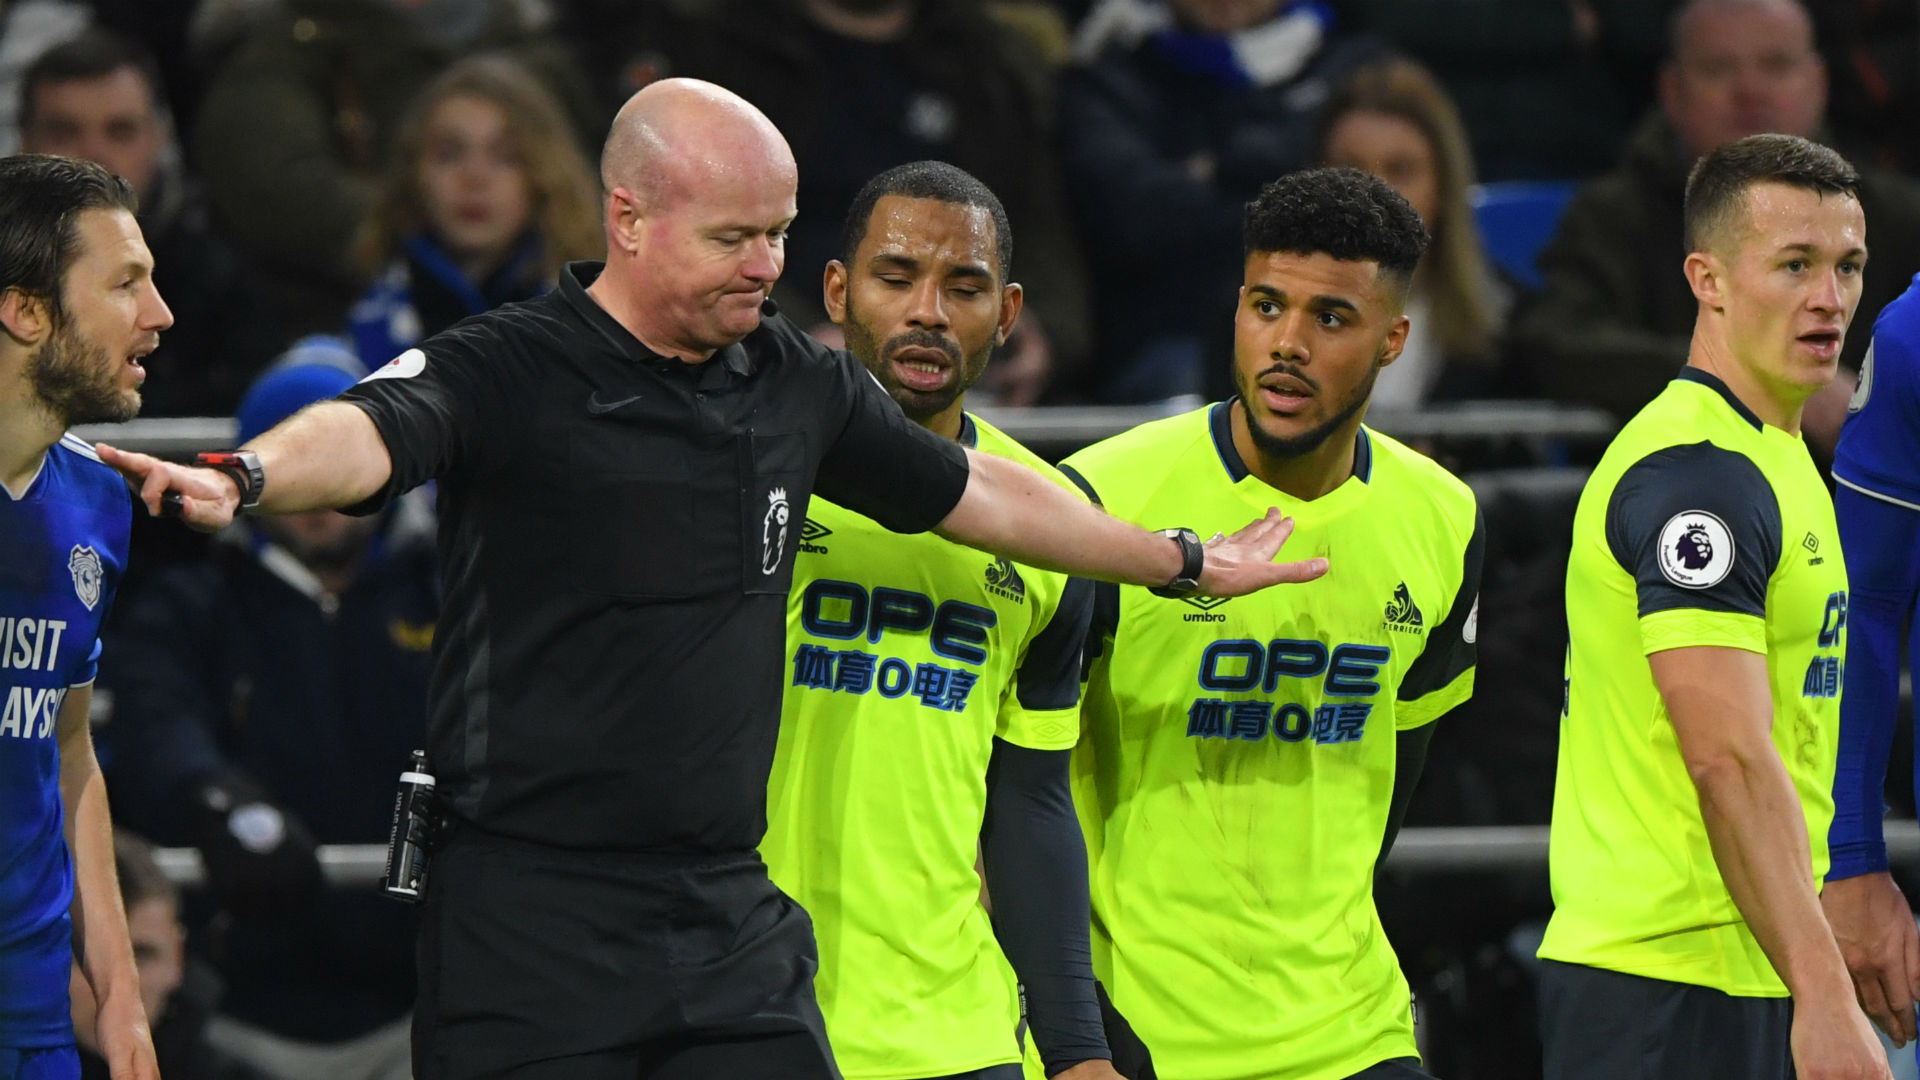 Cardiff City held on to a 0-0 draw at home to Huddersfield Town on Saturday, with David Wanger angry his team had a penalty overturned.